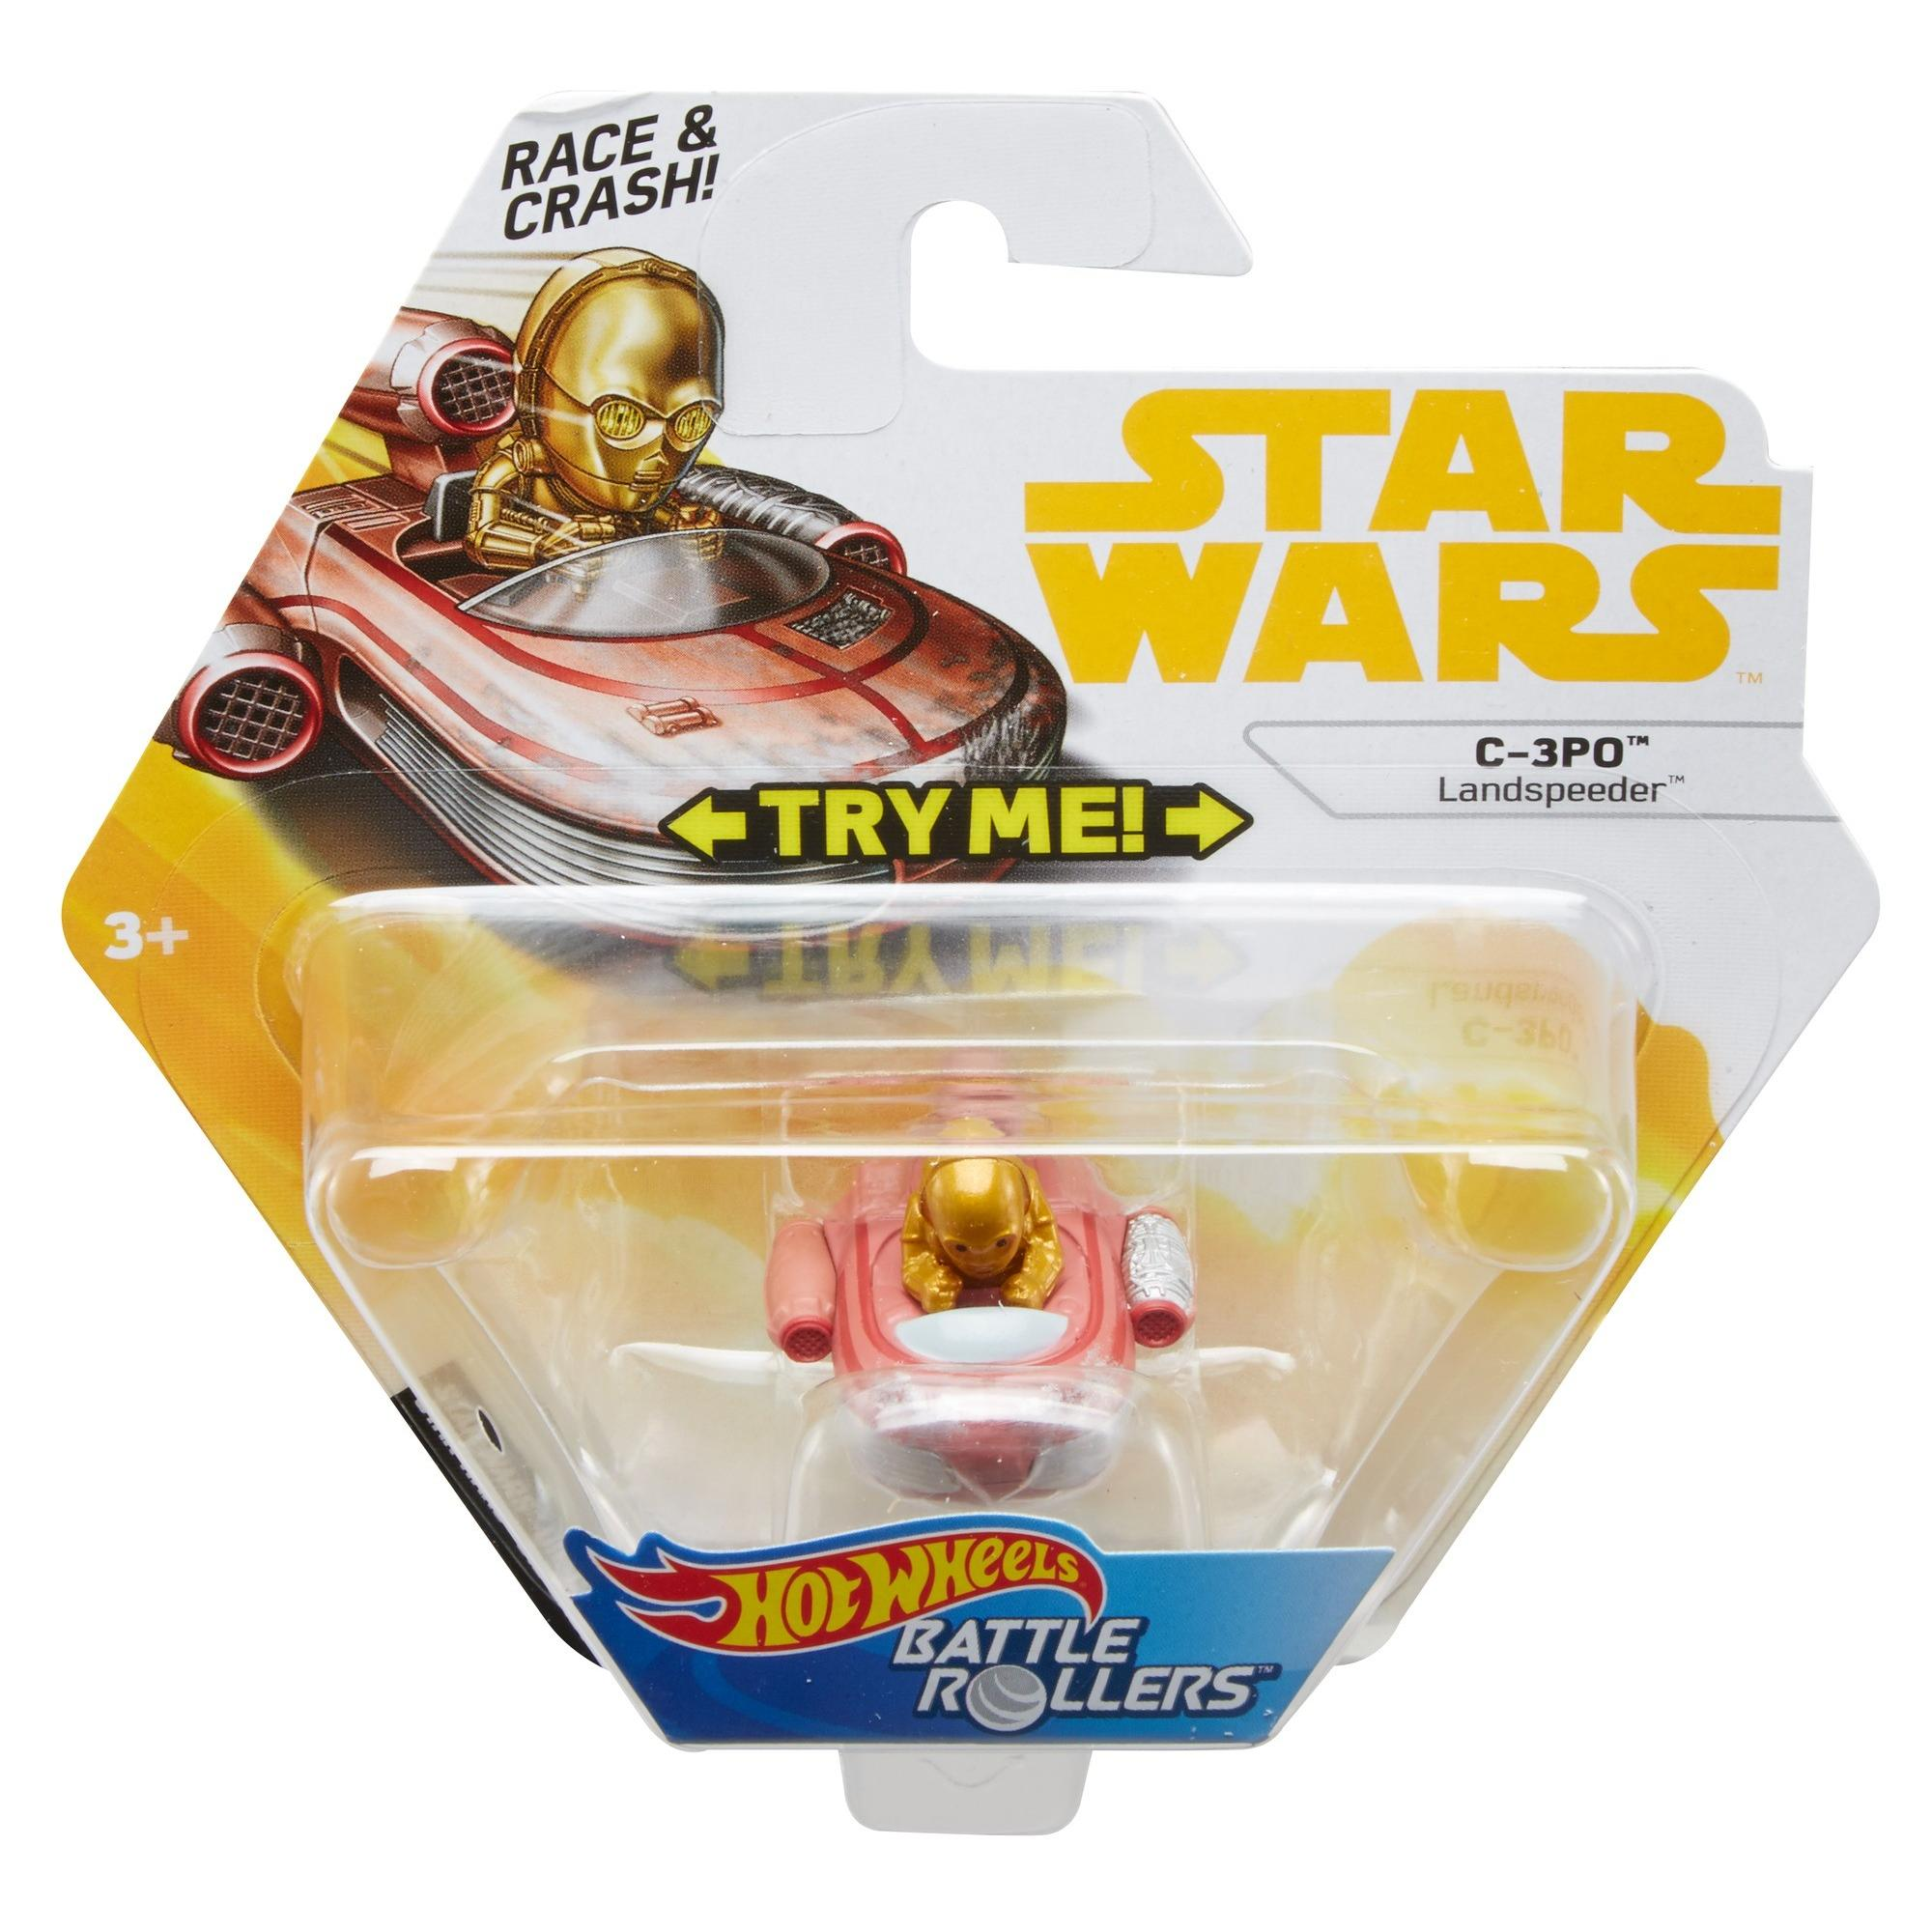 Solo: ASWS (ANH) HW C-3PO Battle Roller Toy 1